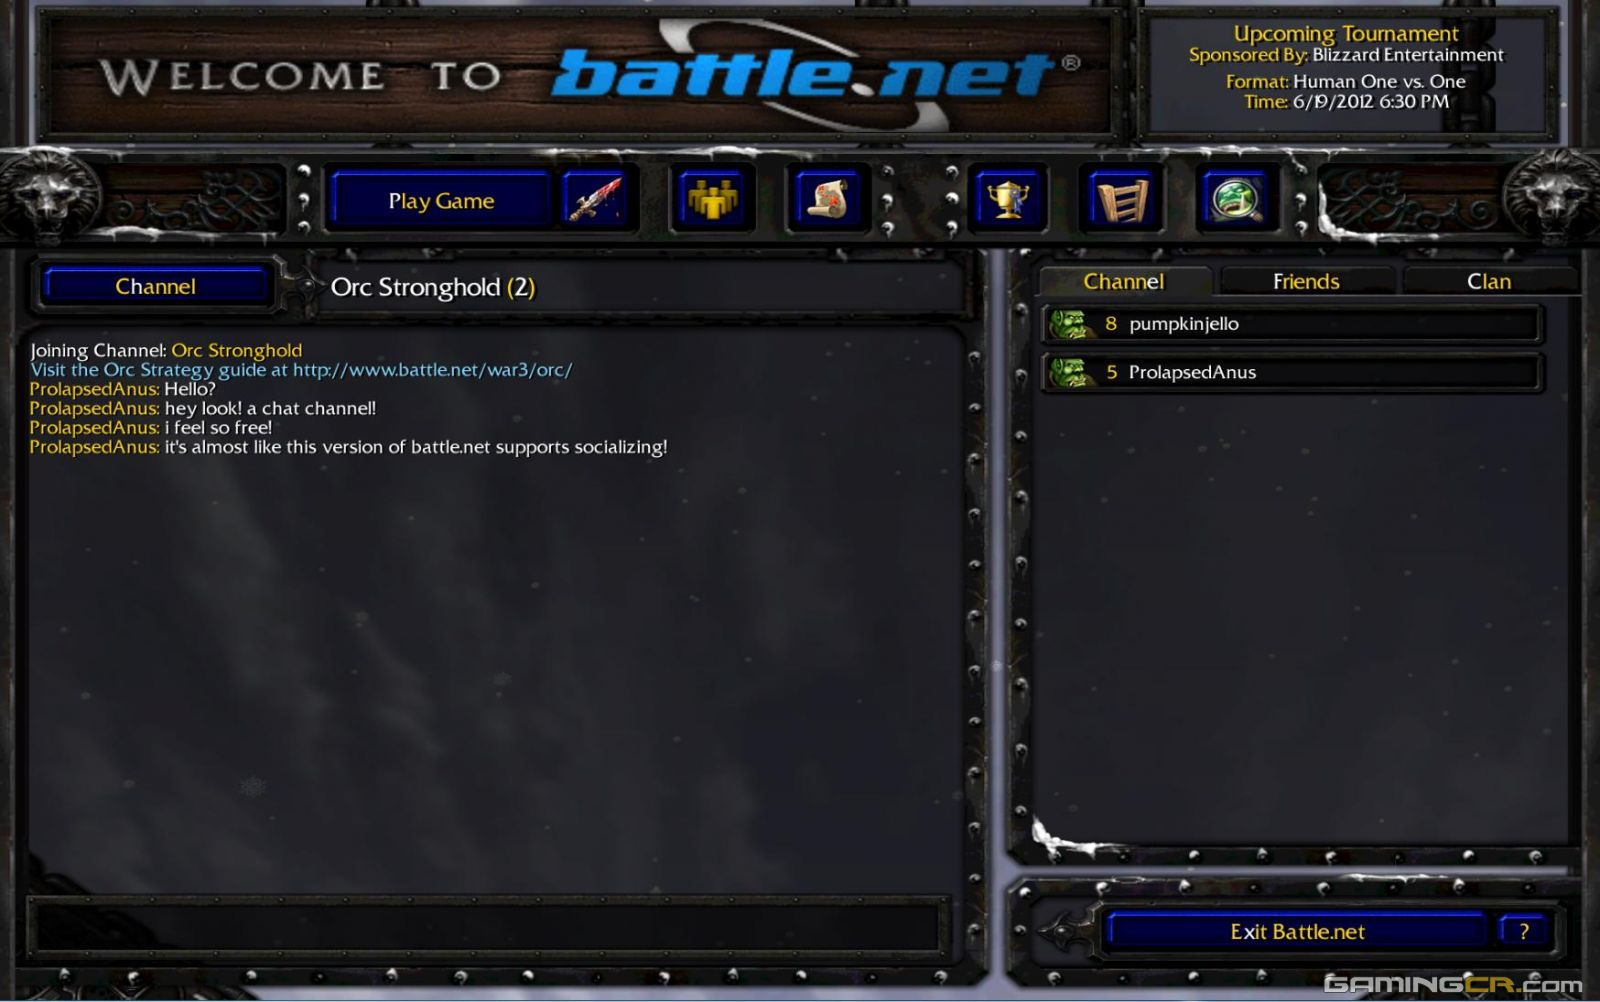 Warcraft III Battle.net